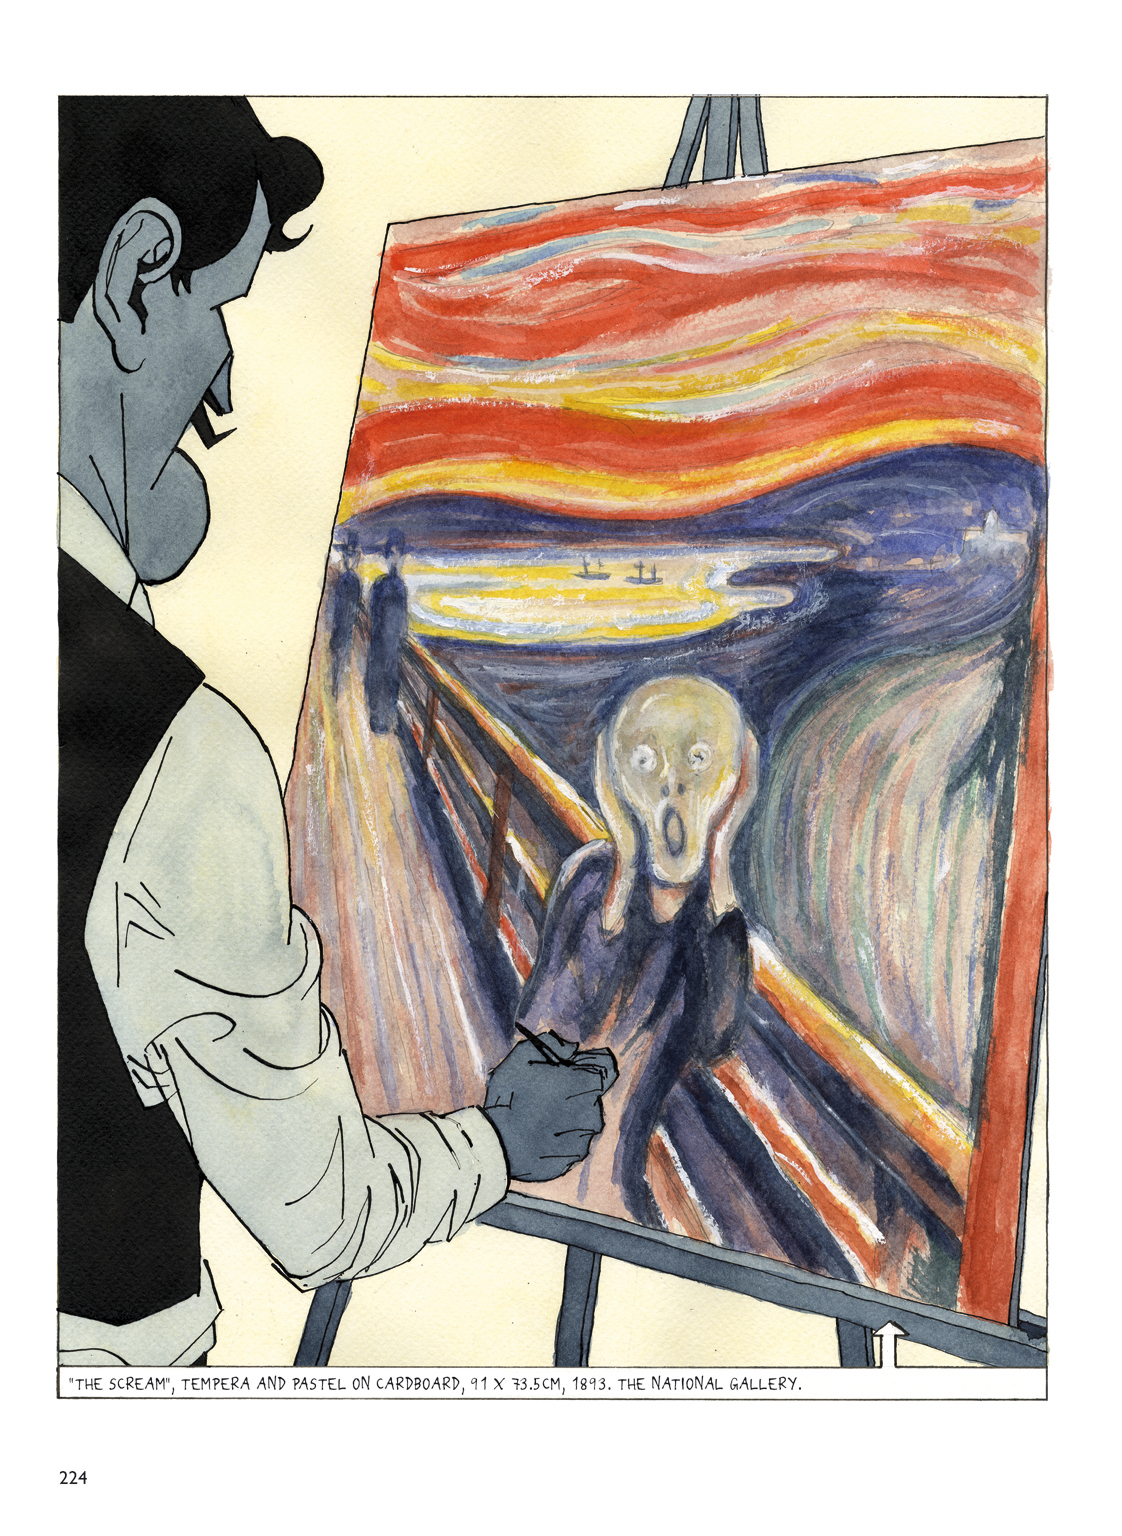 a biography of edvard munch a norwegian painter The scream was made by the norwegian painter and printmaker edvard edvard munch and the scream click here biography of edvard munch- moonk.